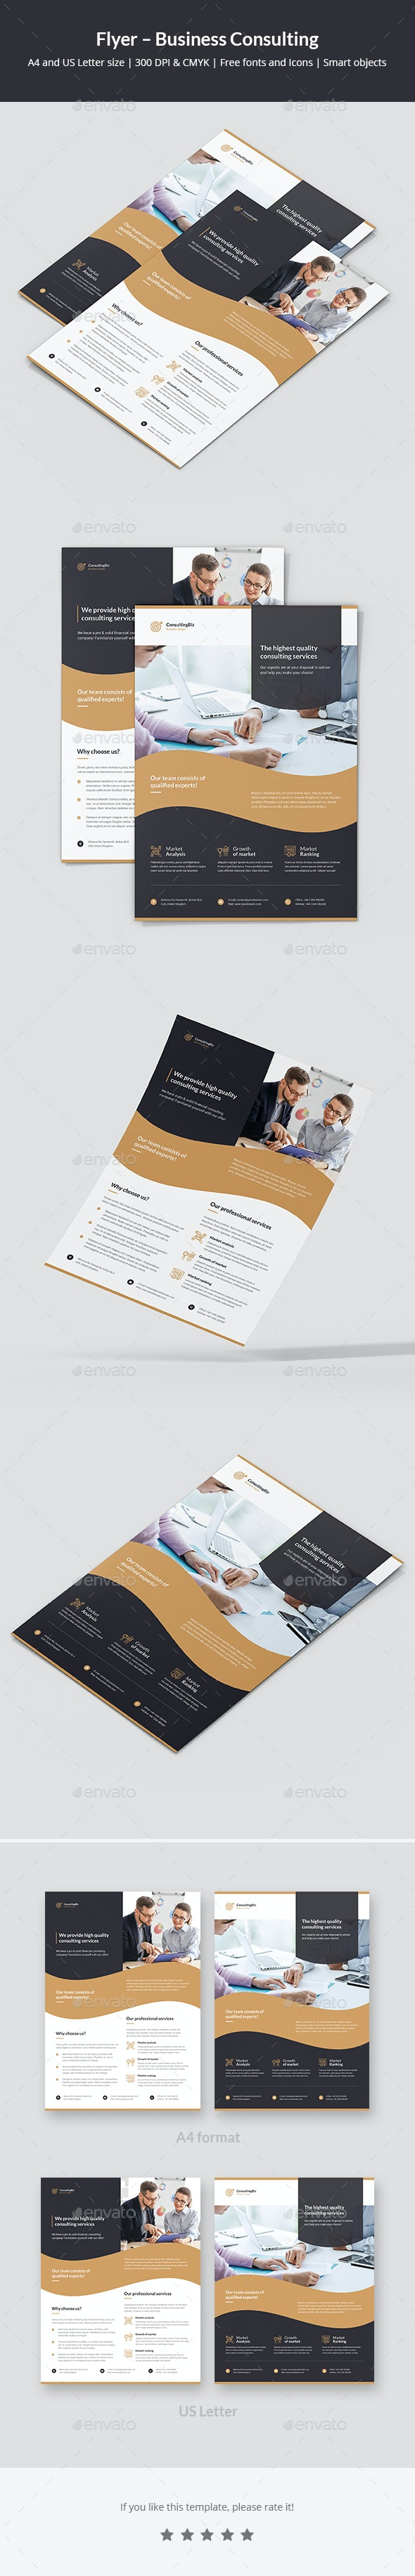 Flyer – Business Consulting - Corporate Flyers